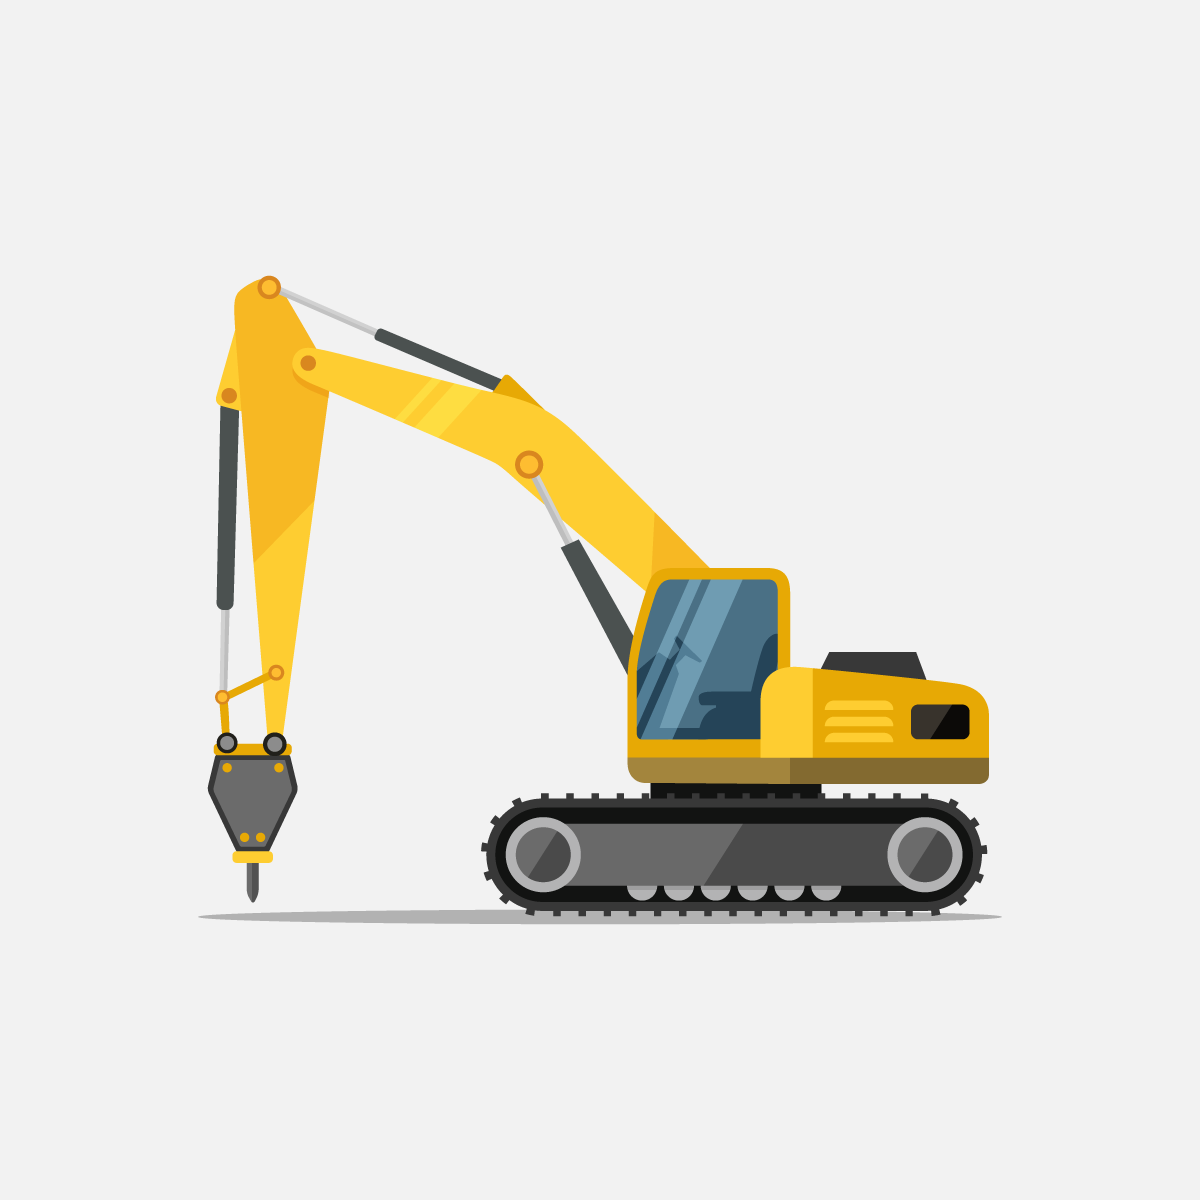 —Pngtree—hydraulic-jackhammer-special-machines-for_4843138.png